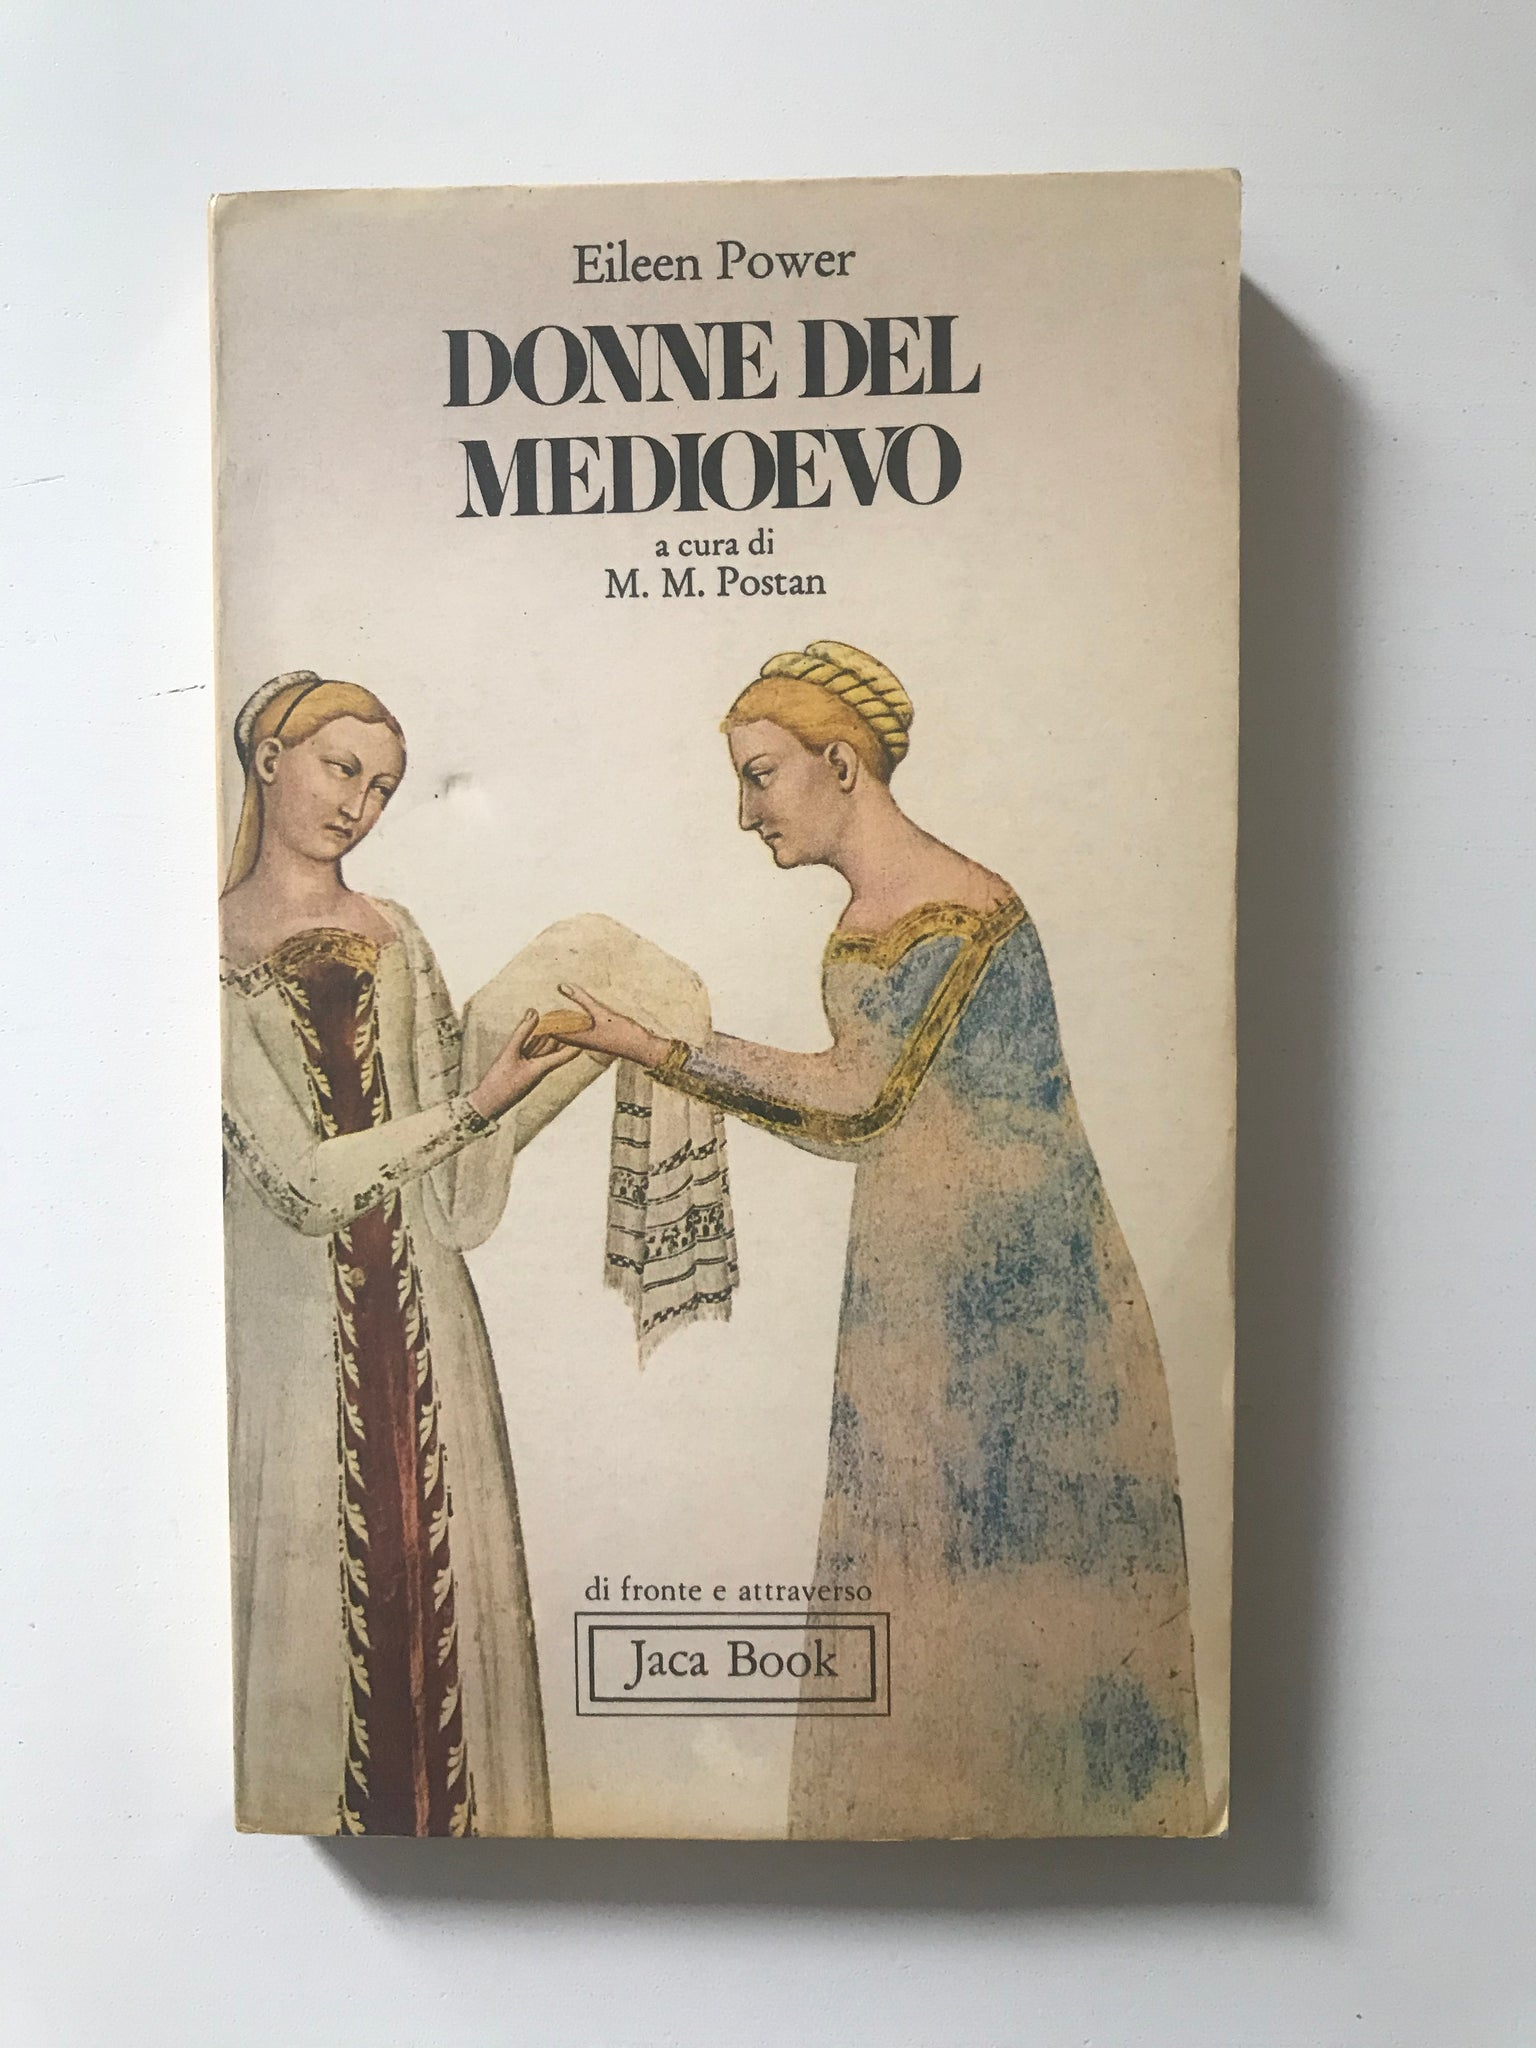 Eileen Power - Donne del Medioevo